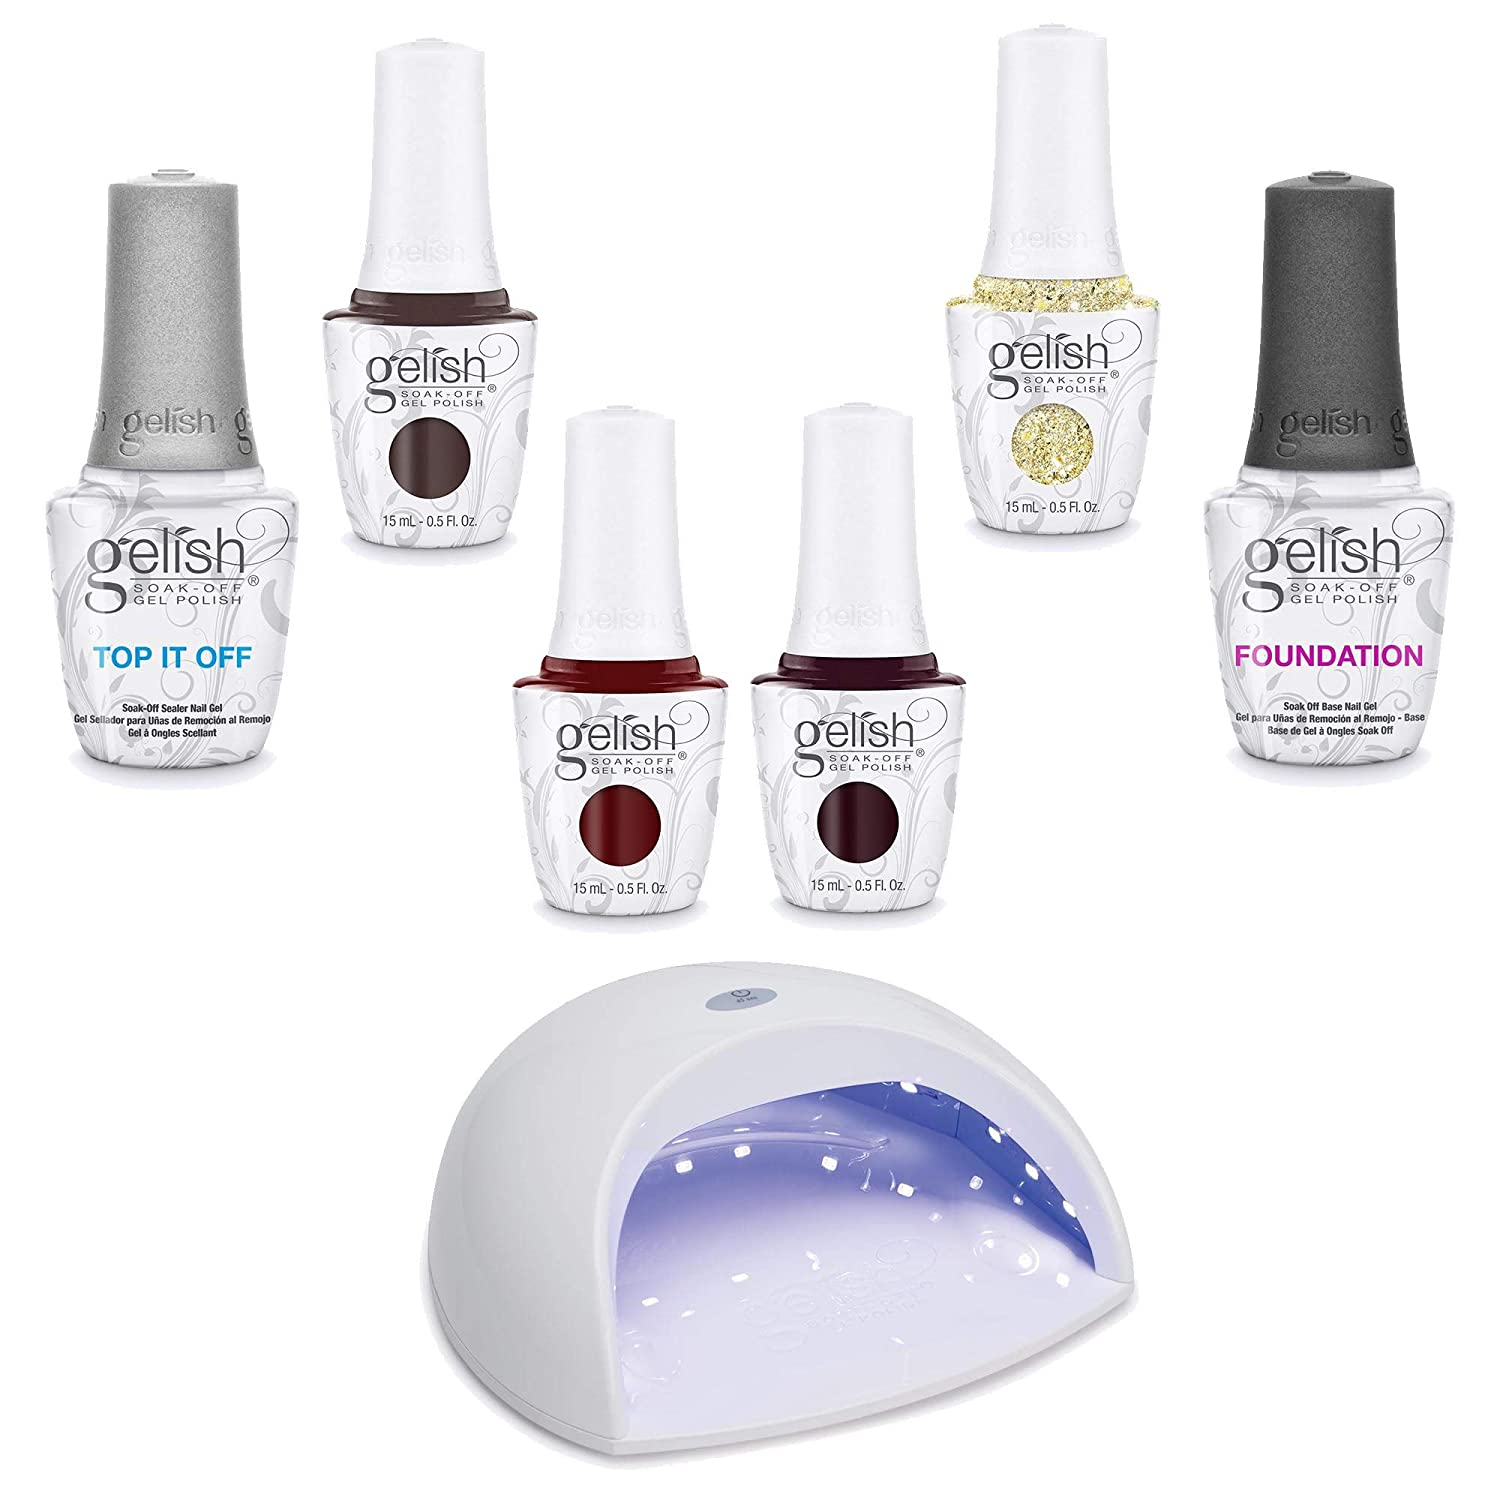 Gelish Soak-Off Gel Polish Starter Kit Sales of SALE items from new works 18W with Lowest price challenge Wint LED - Light